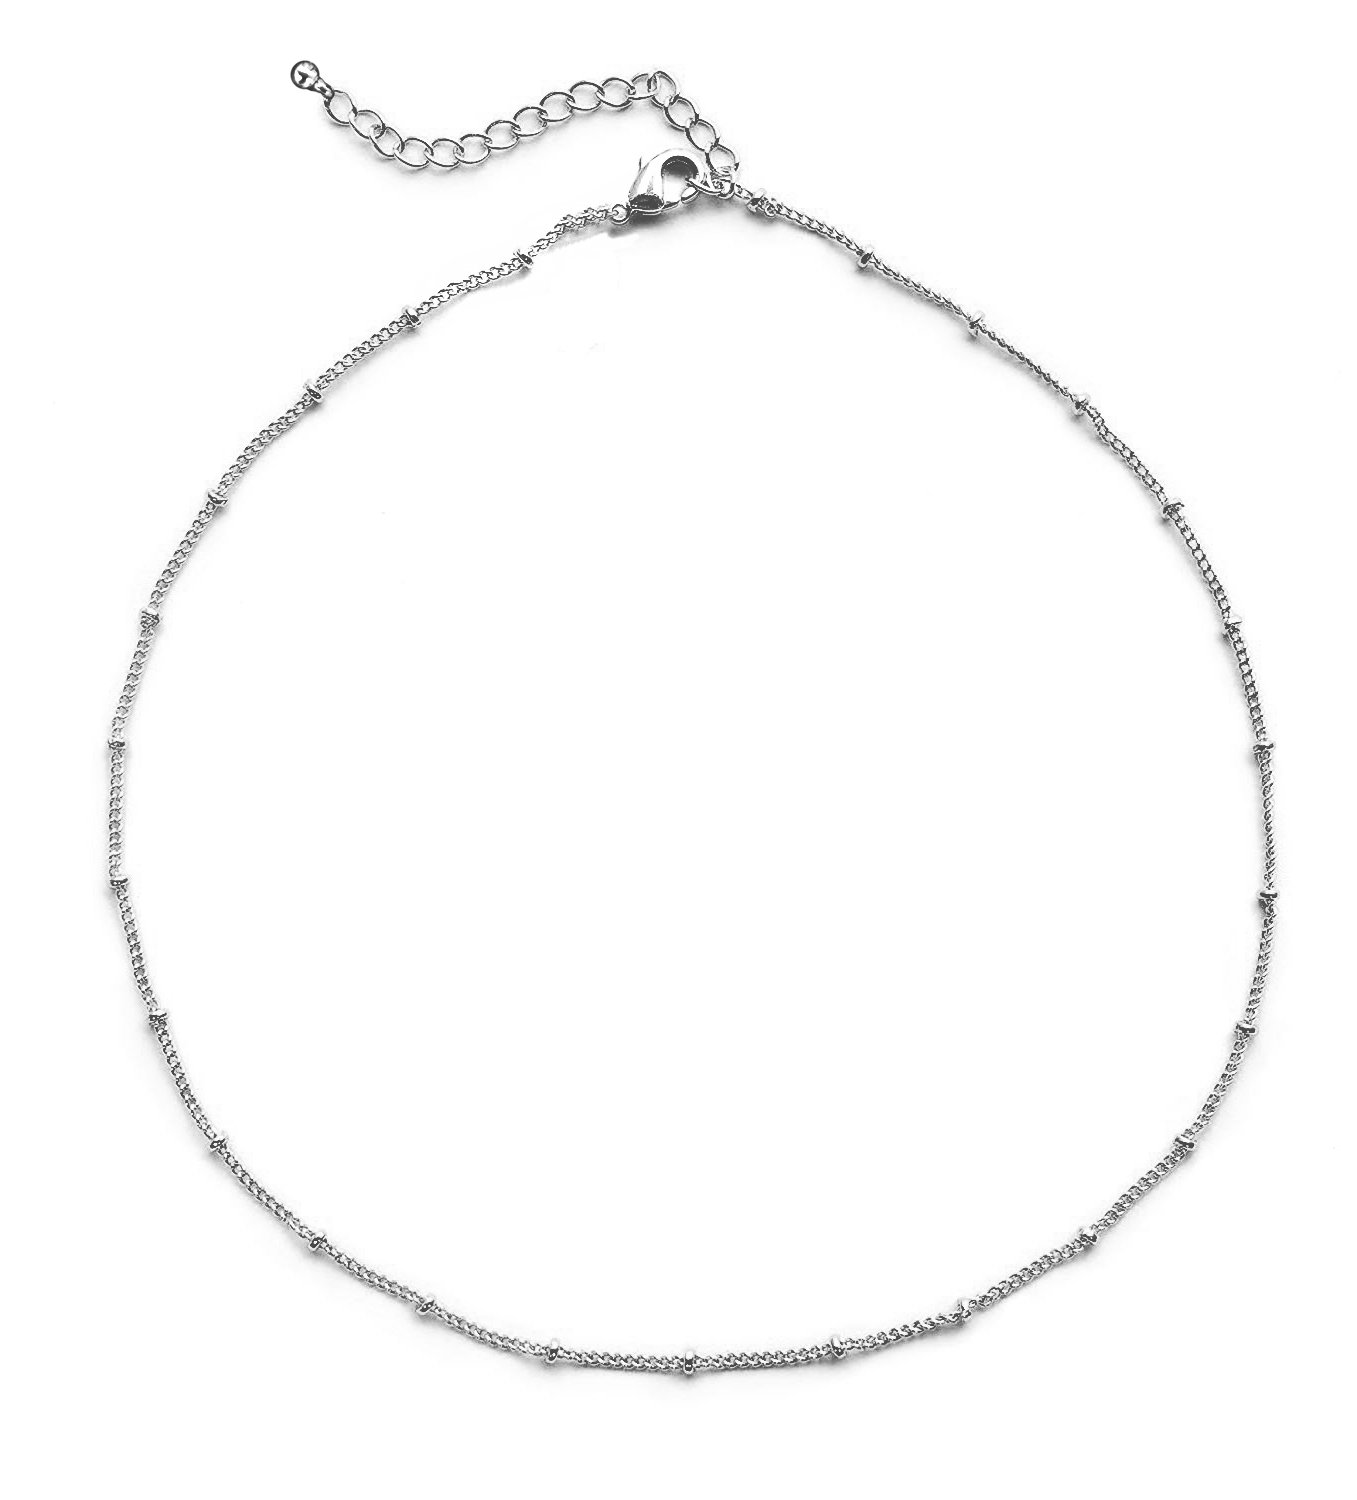 Jane Stone Women's Choker Necklace in 14K Gold Dipped or Sterling Silver: Satellite Beaded Curb Chain 1mm Minimalist Necklaces for Charity (13'' to 15'')